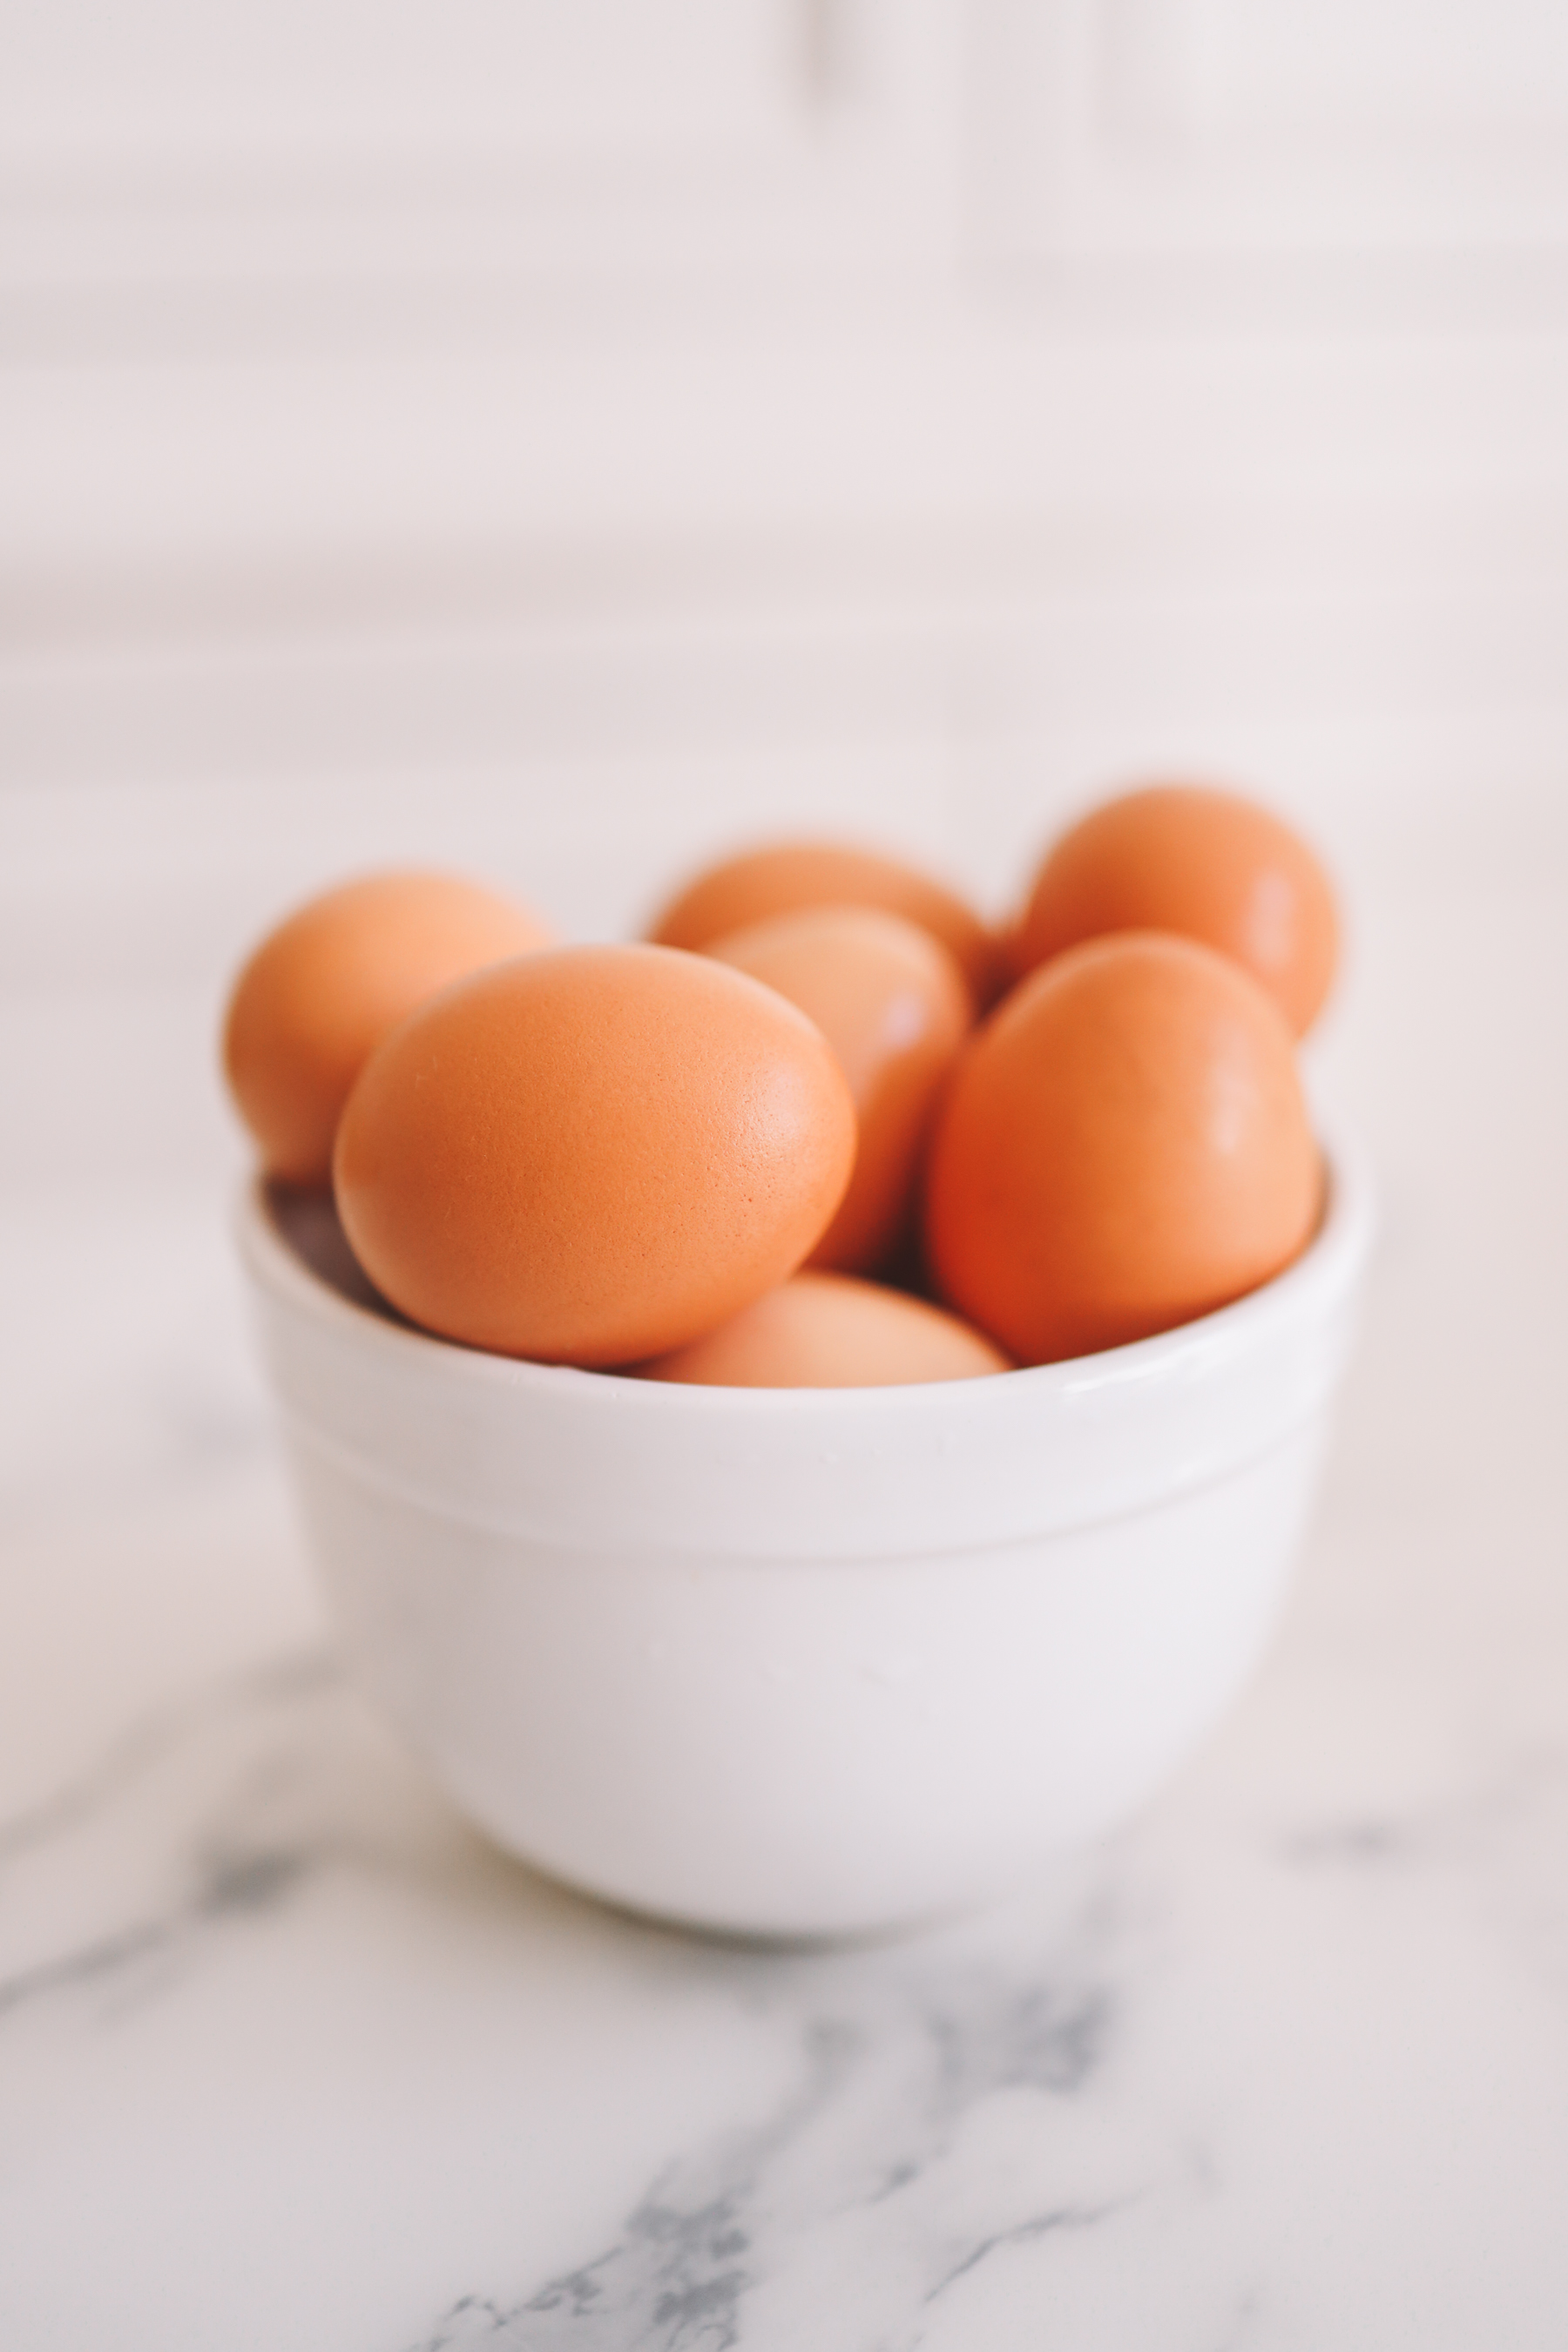 Aldi products - 7. Goldhen Cage-Free Large Grade A Brown Eggs